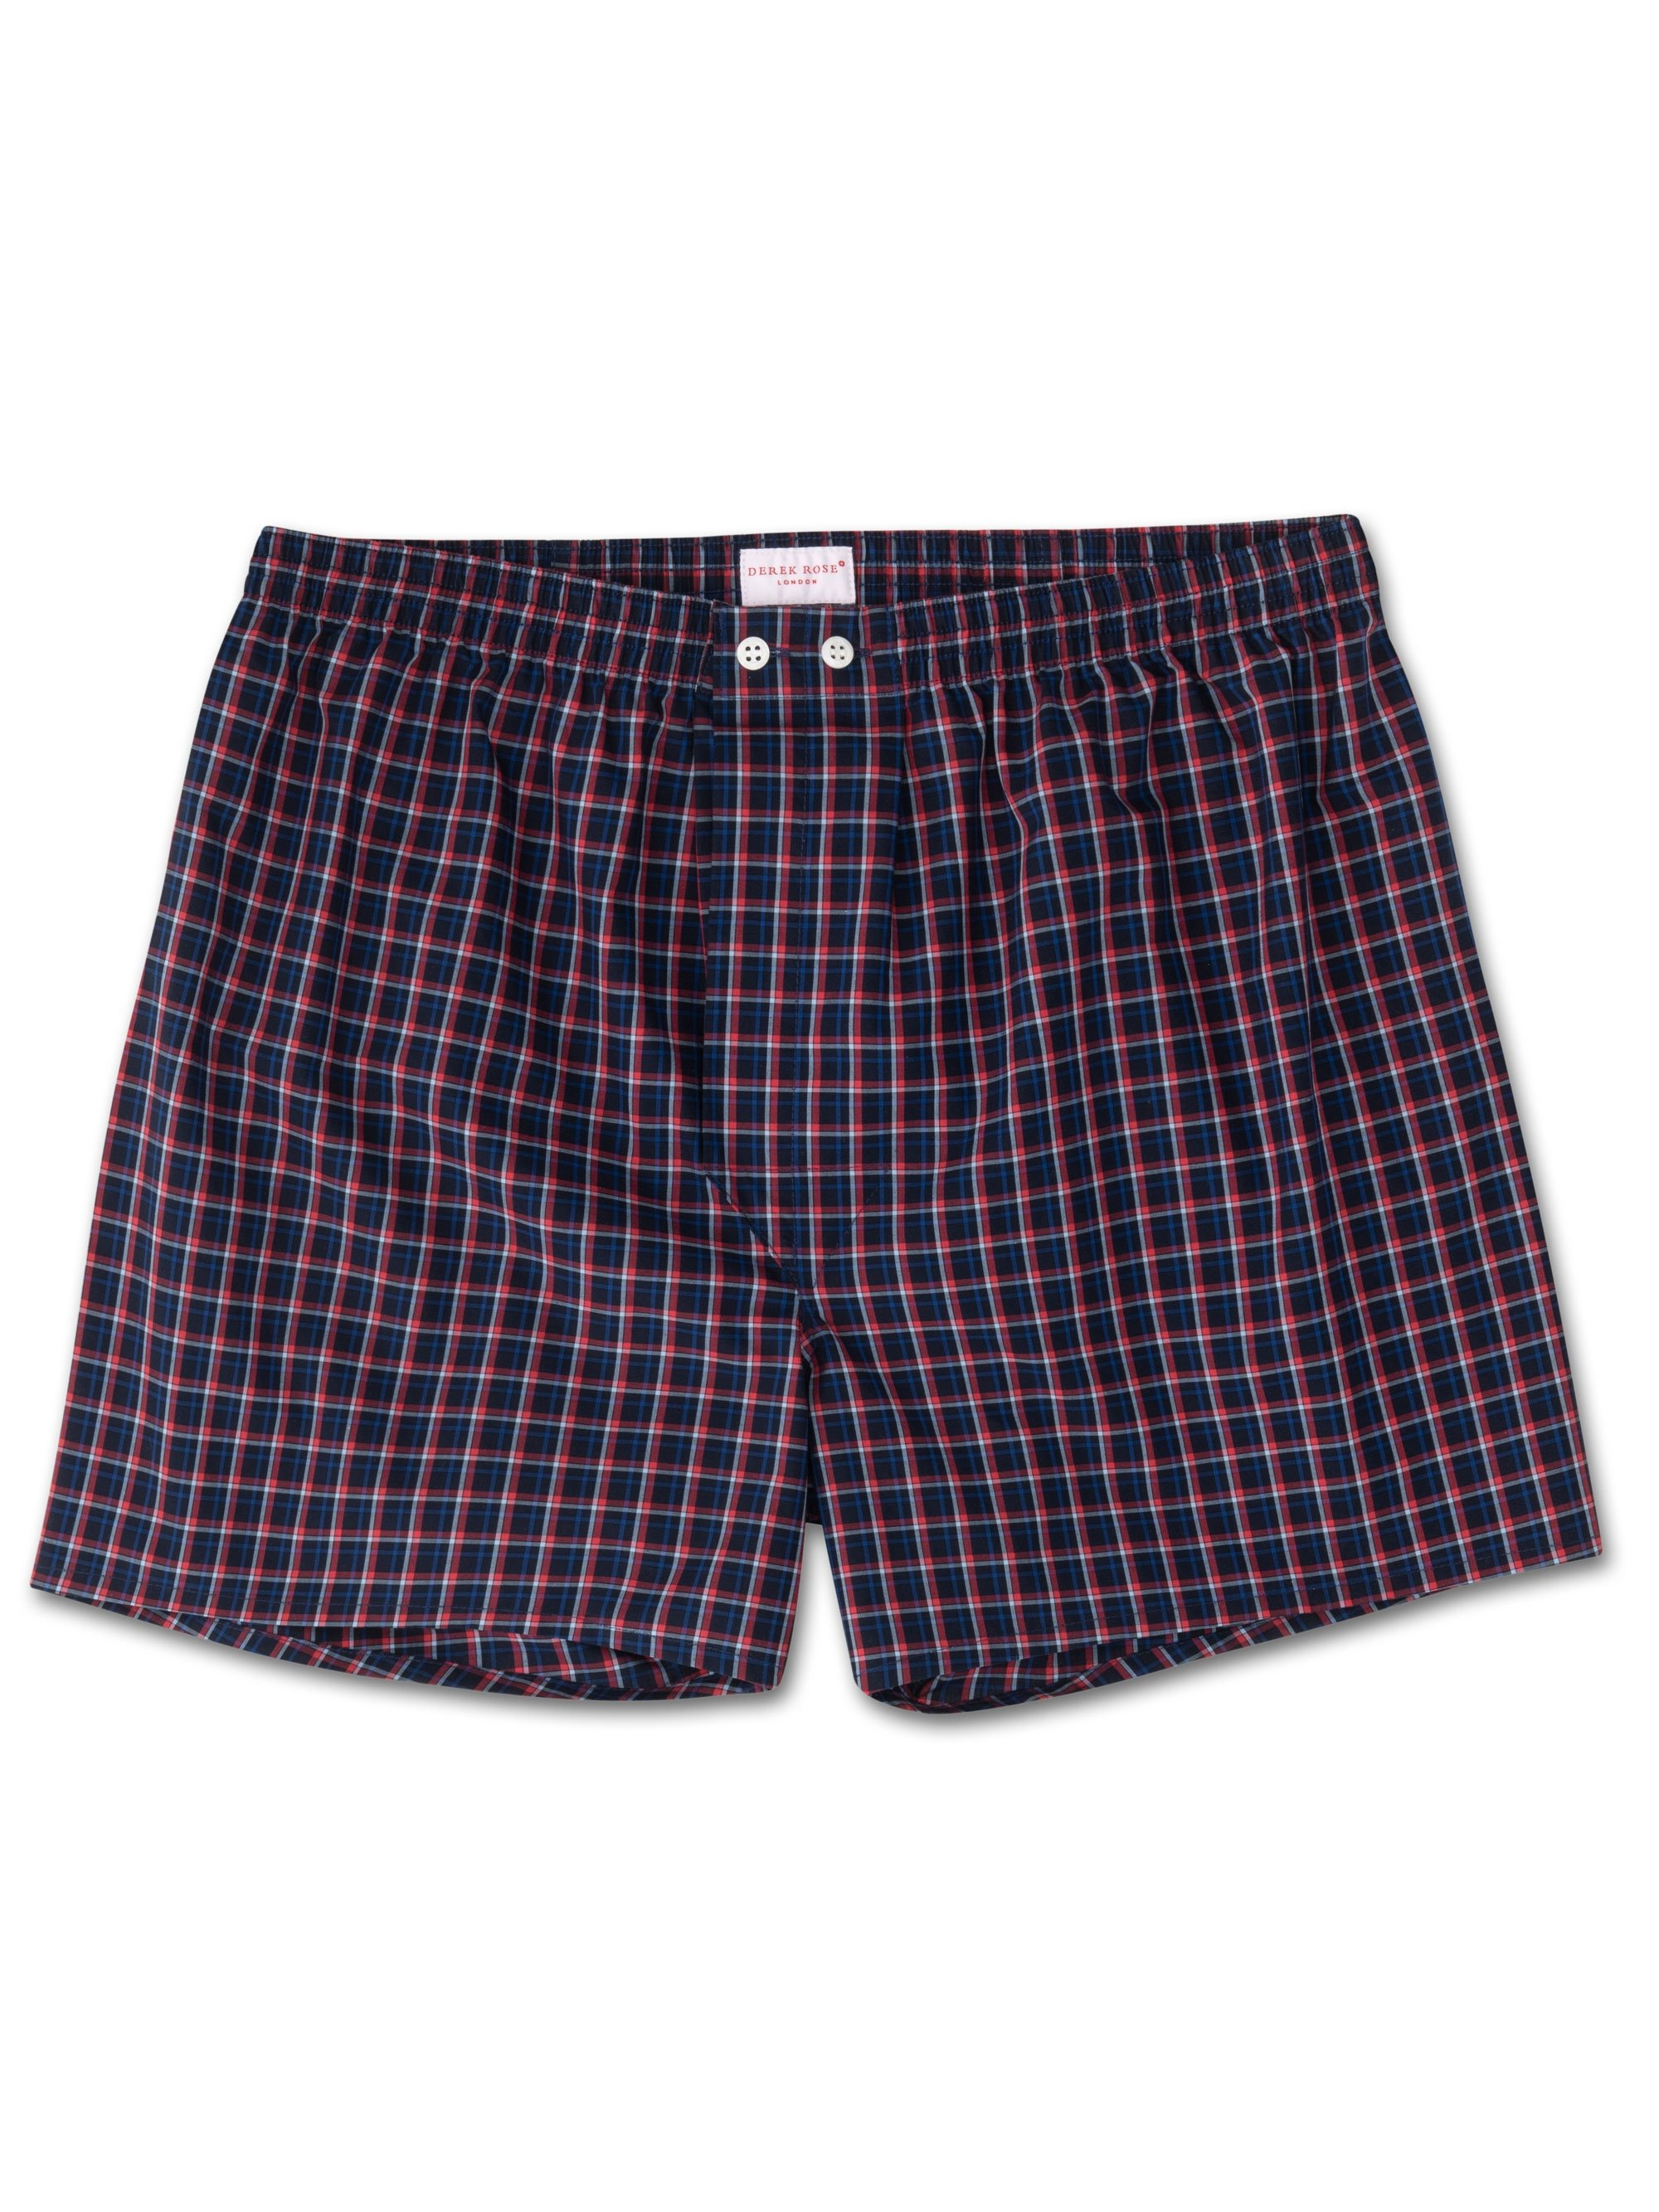 Men's Classic Fit Boxer Shorts Barker 22 Cotton Check Navy